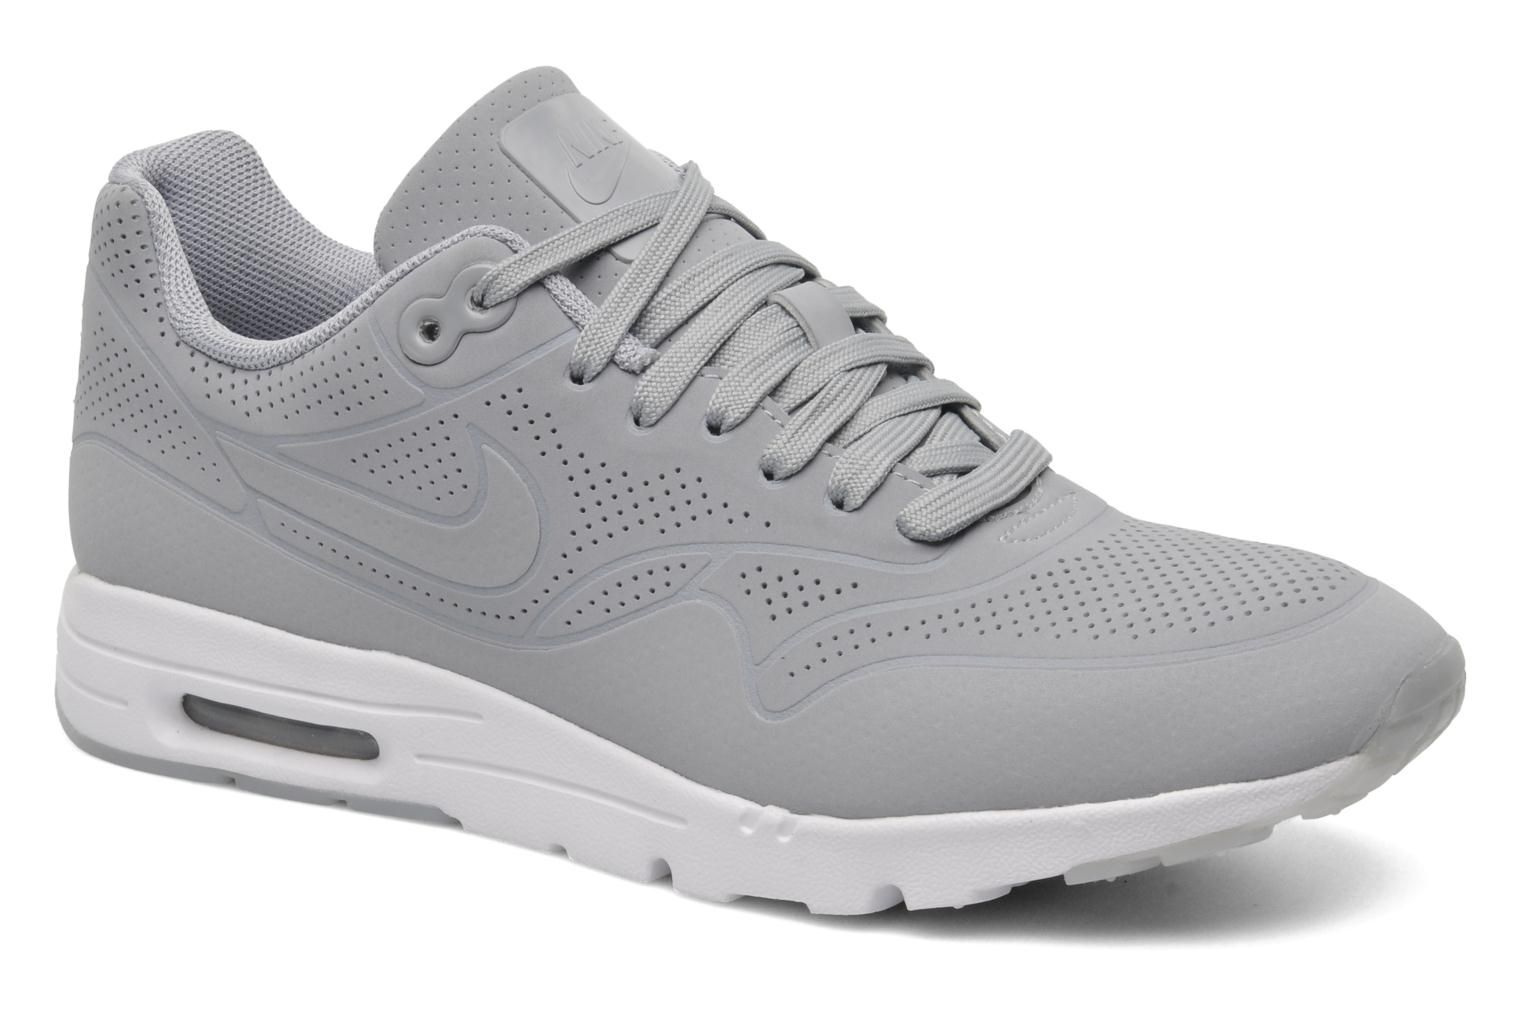 92742872bc4a Nike Wmns Air Max 1 Ultra Moire Trainers in Grey at Sarenza.co.uk ...